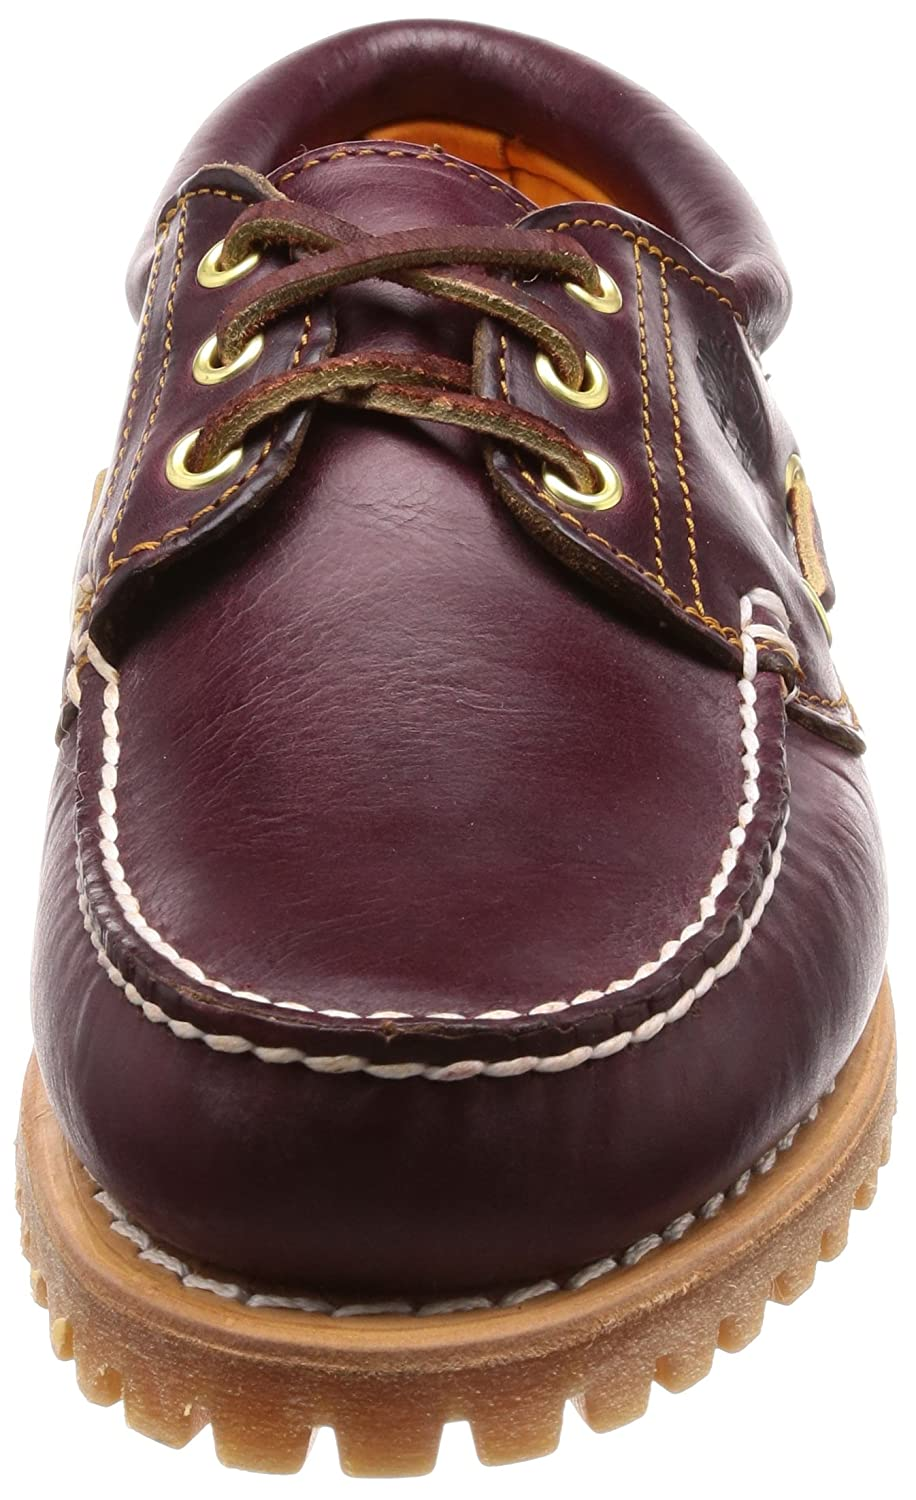 Del Classic Eye Hombre Timberland 3 Para Barco Zapatos Authentics wBTRa